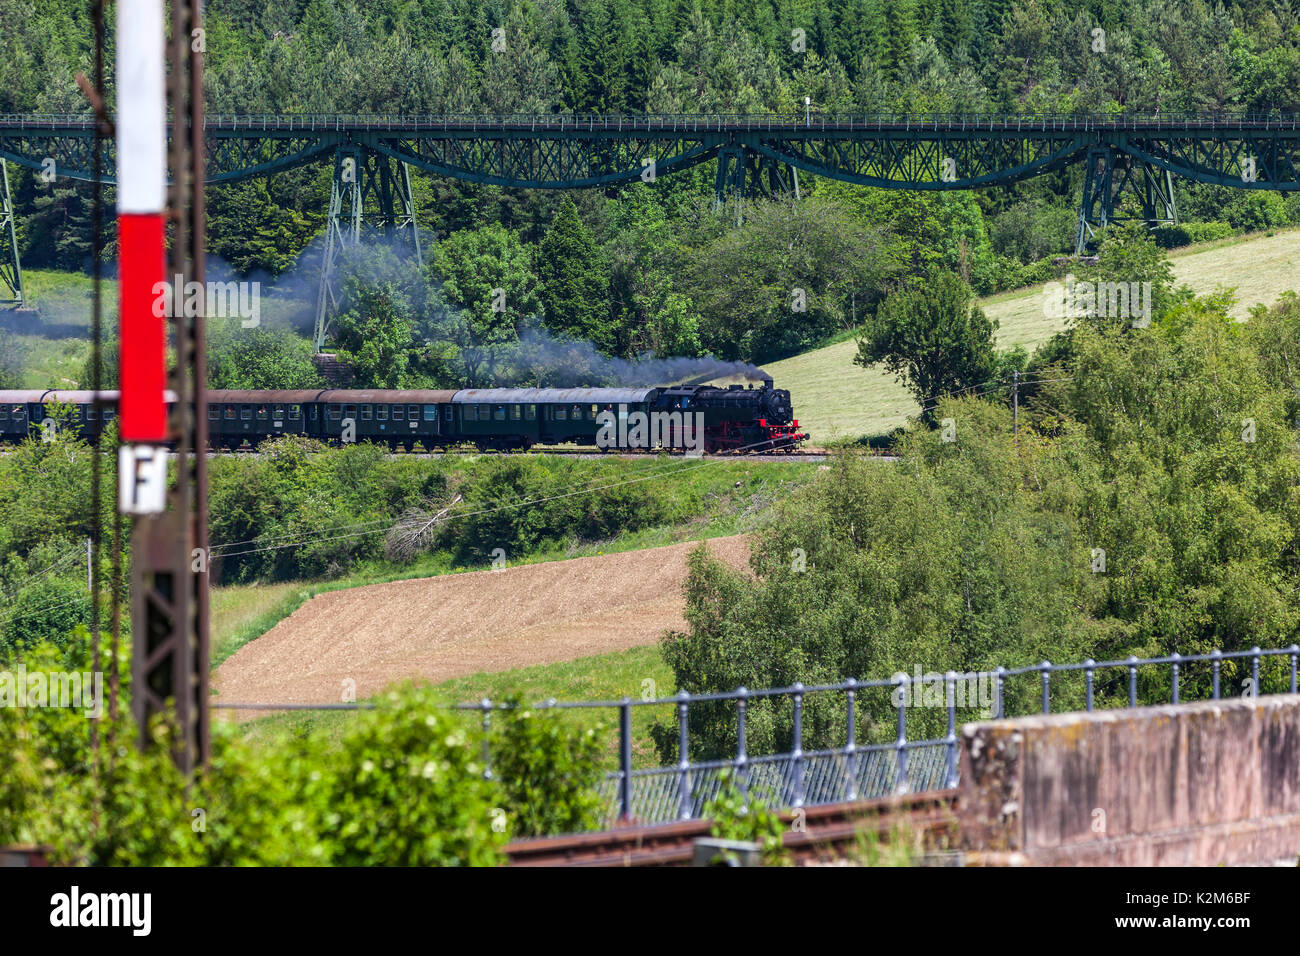 Historic railway Sauschwaenzlebahn, Black Forest. - Stock Image